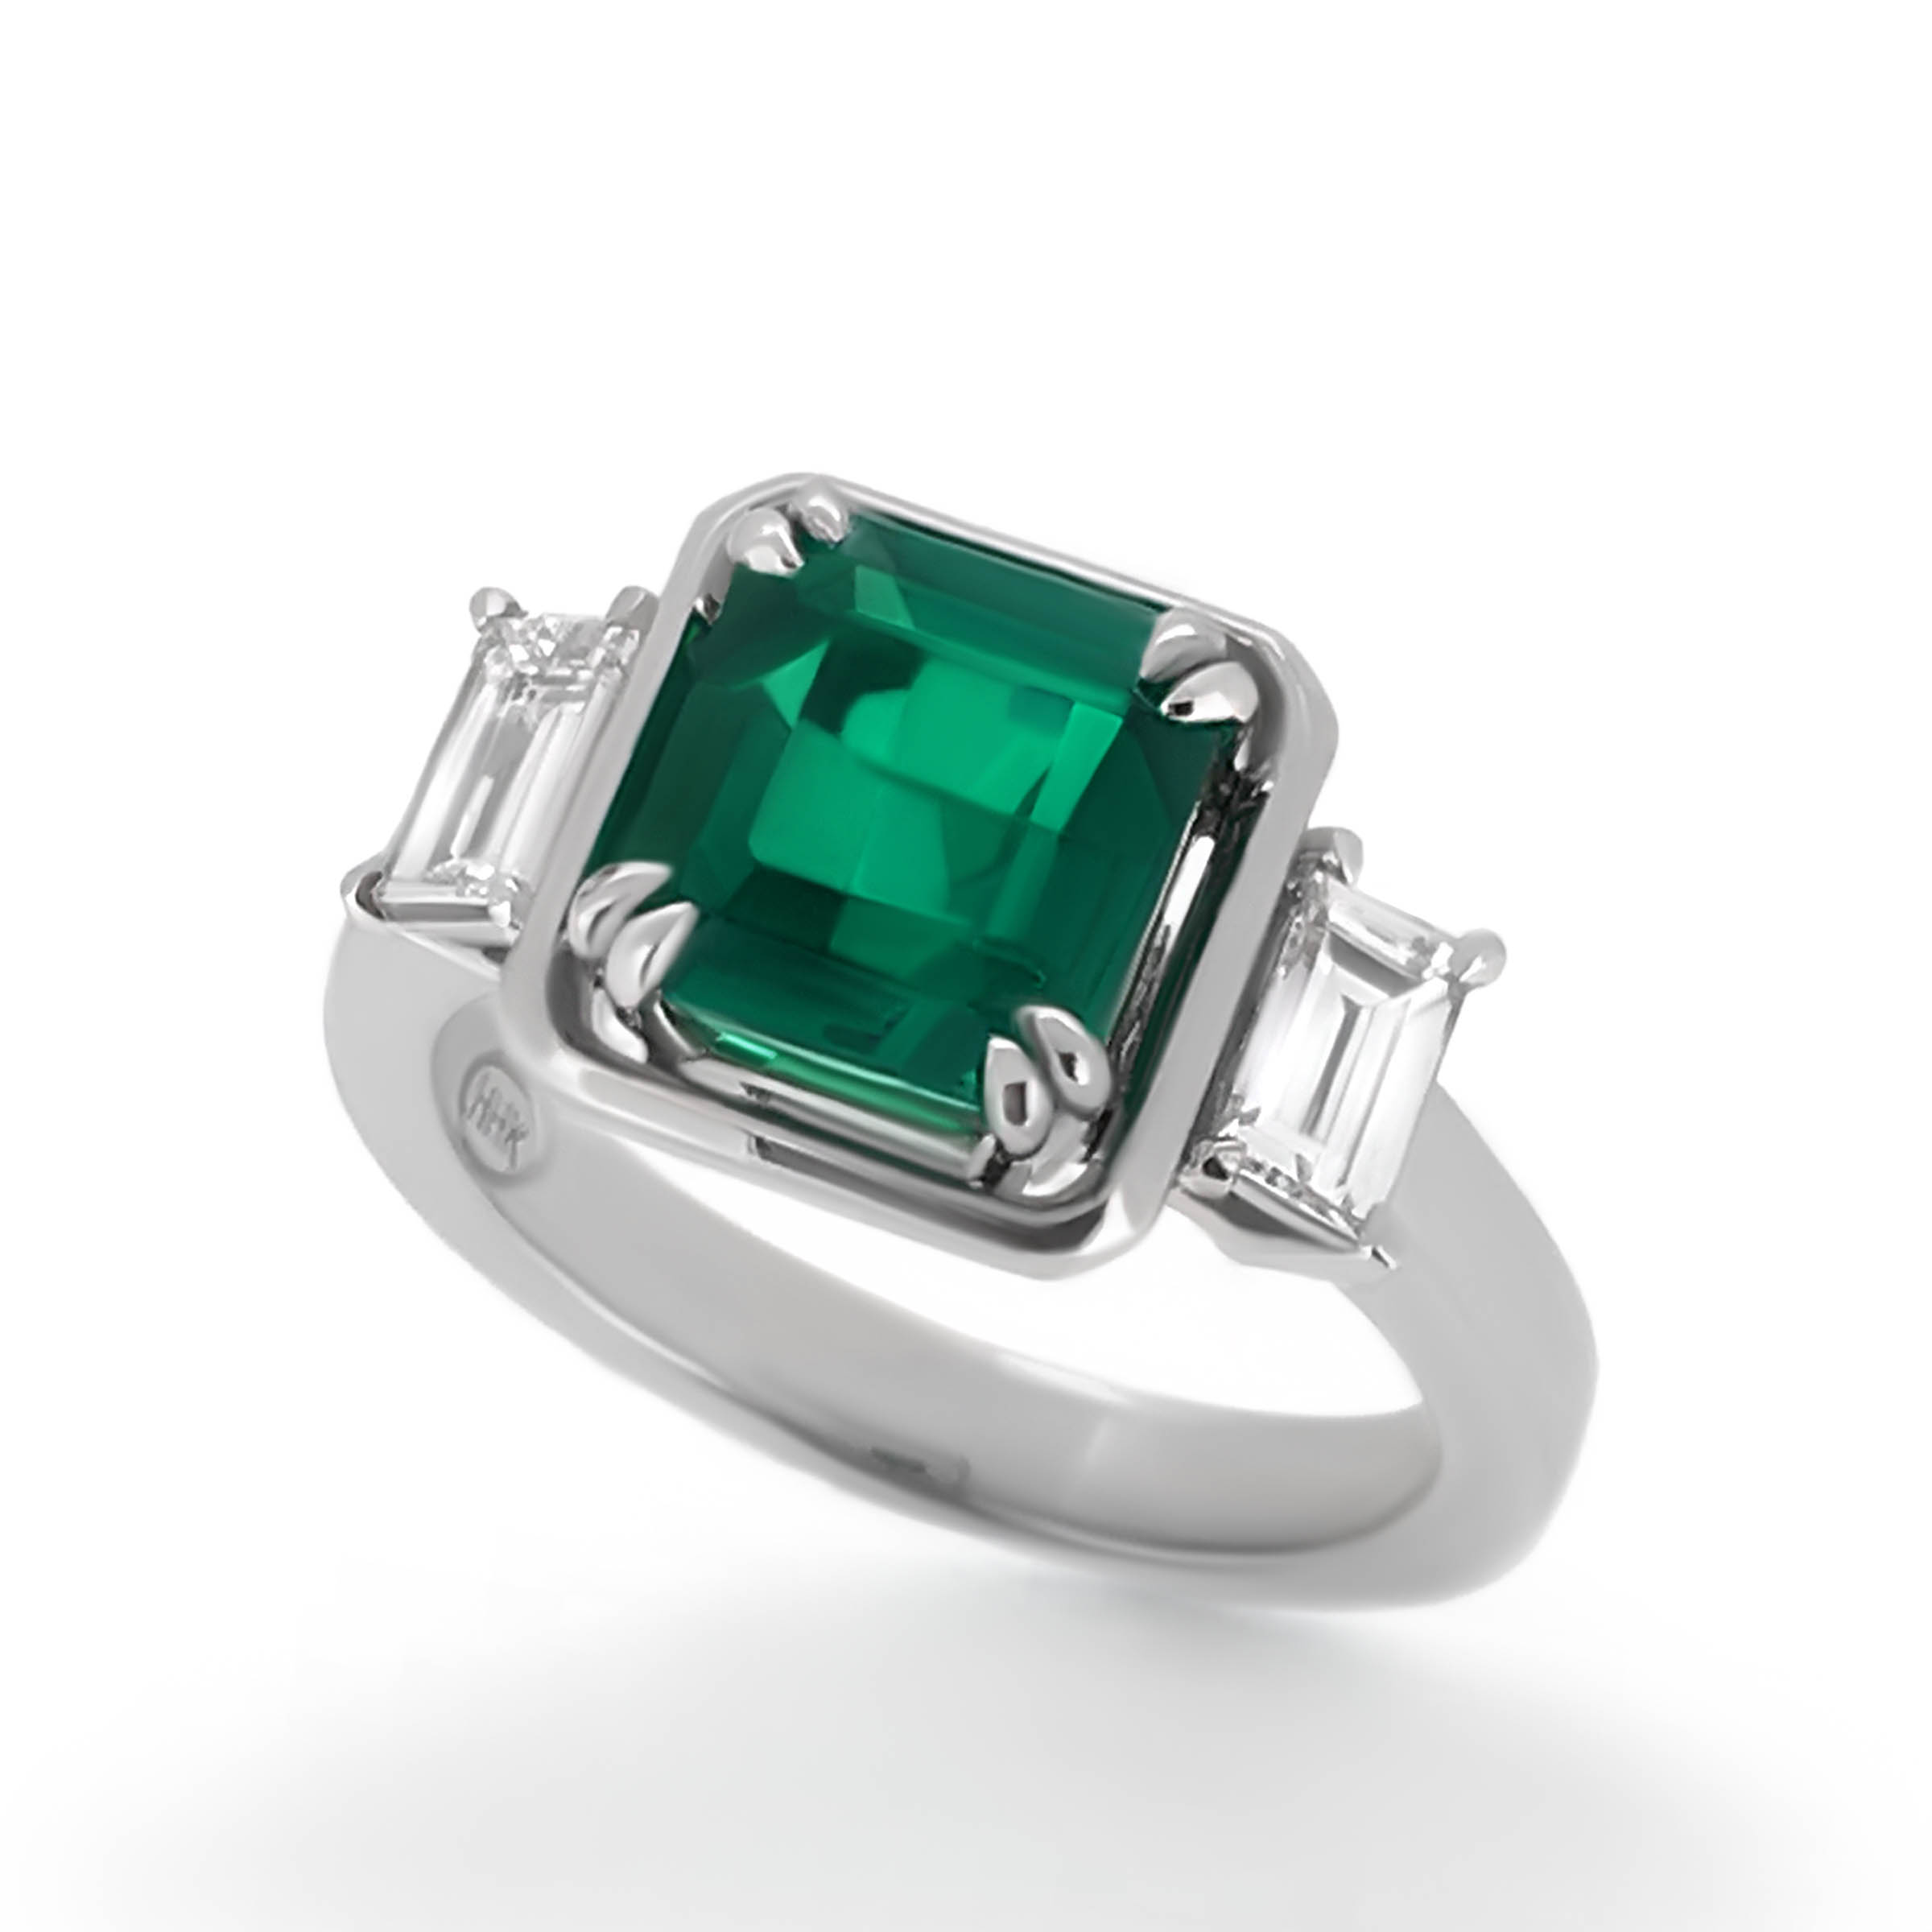 hottest weissman facebook for hotest engag huffpost trend the engagement emeralds ira ring b emerald o